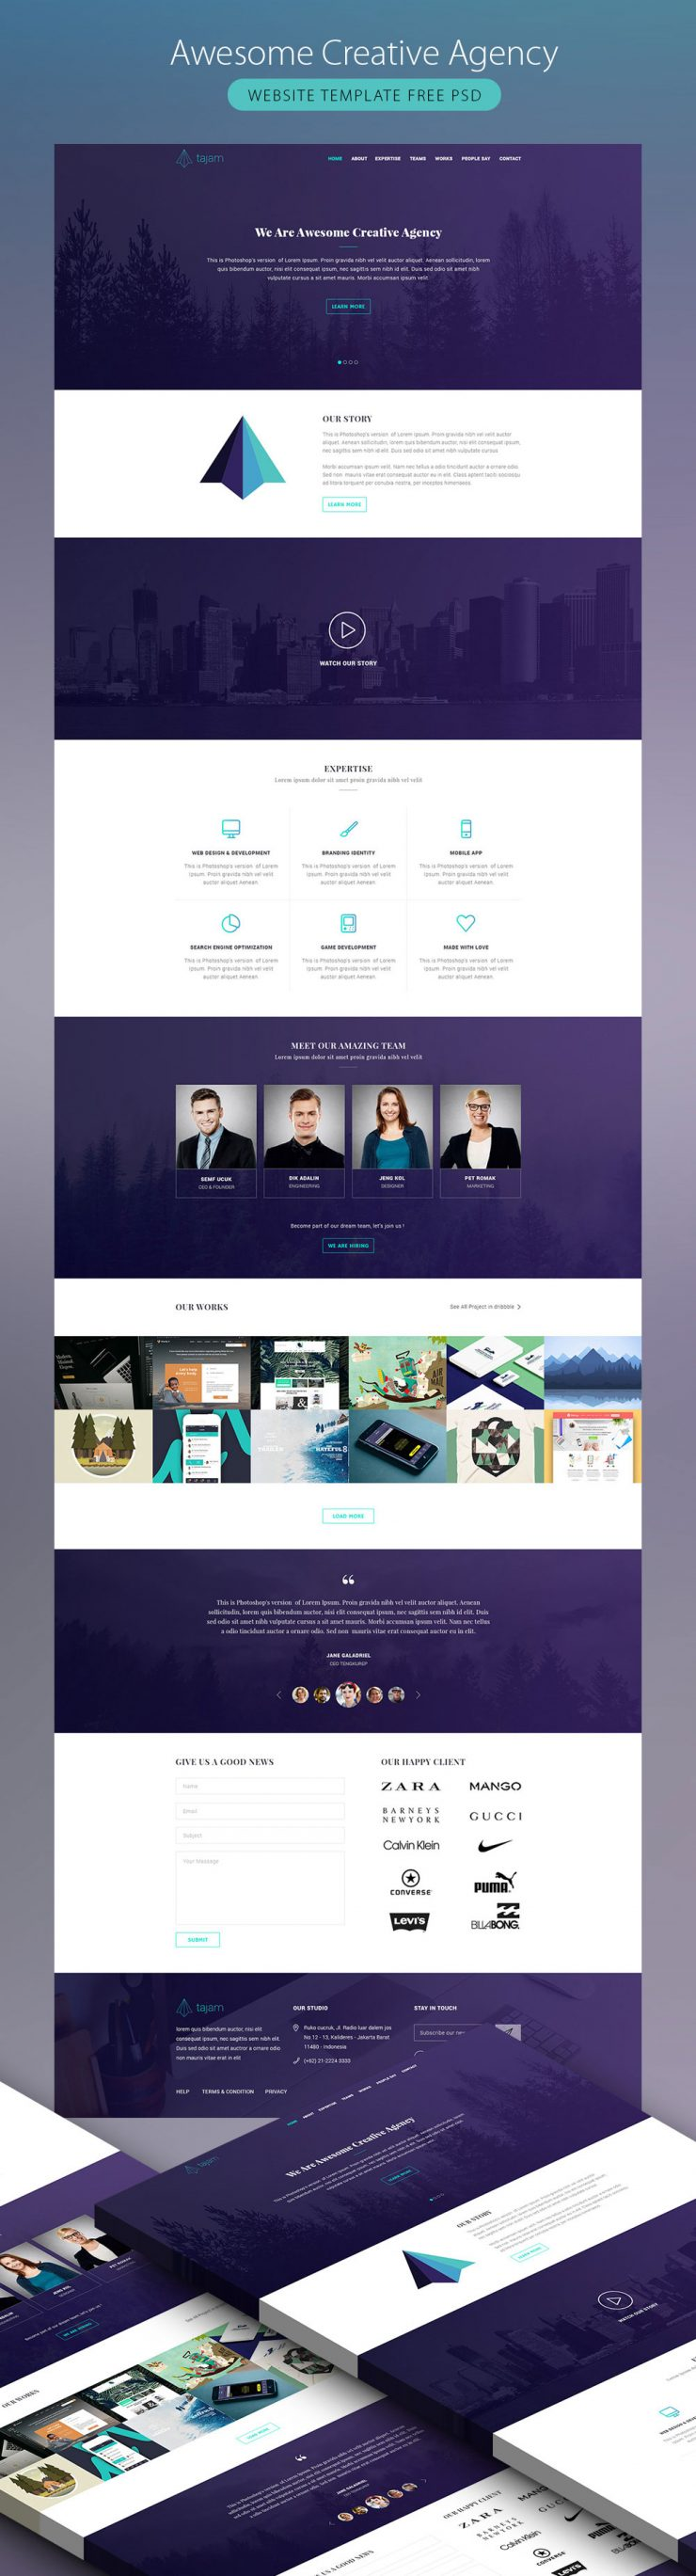 Awesome Creative Agency Website Template Free PSD